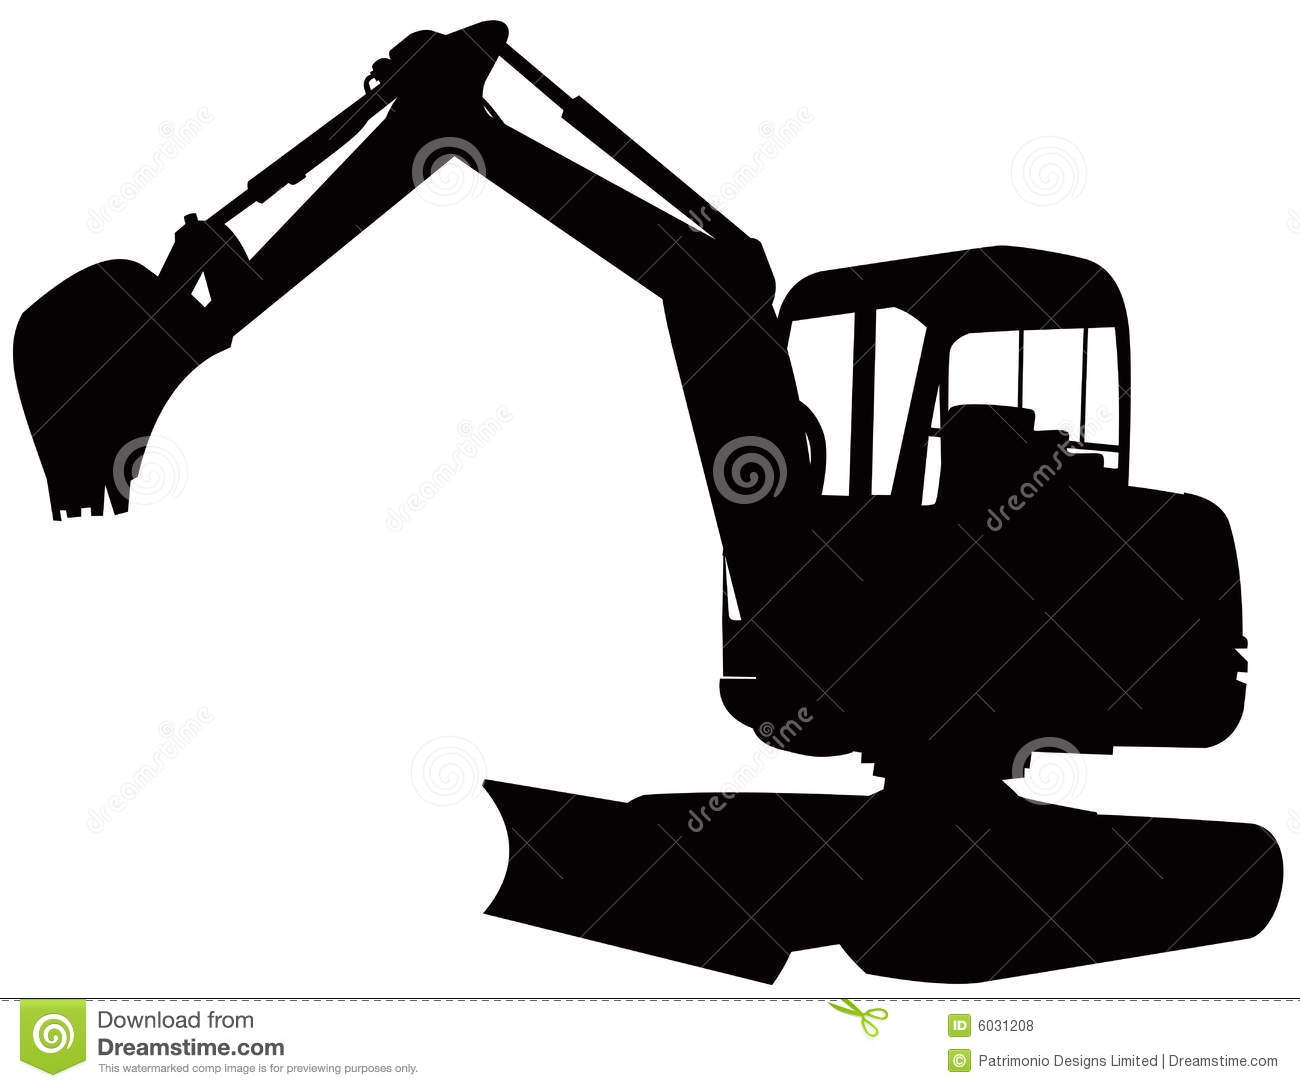 Excavator clipart construction project. Free download best on